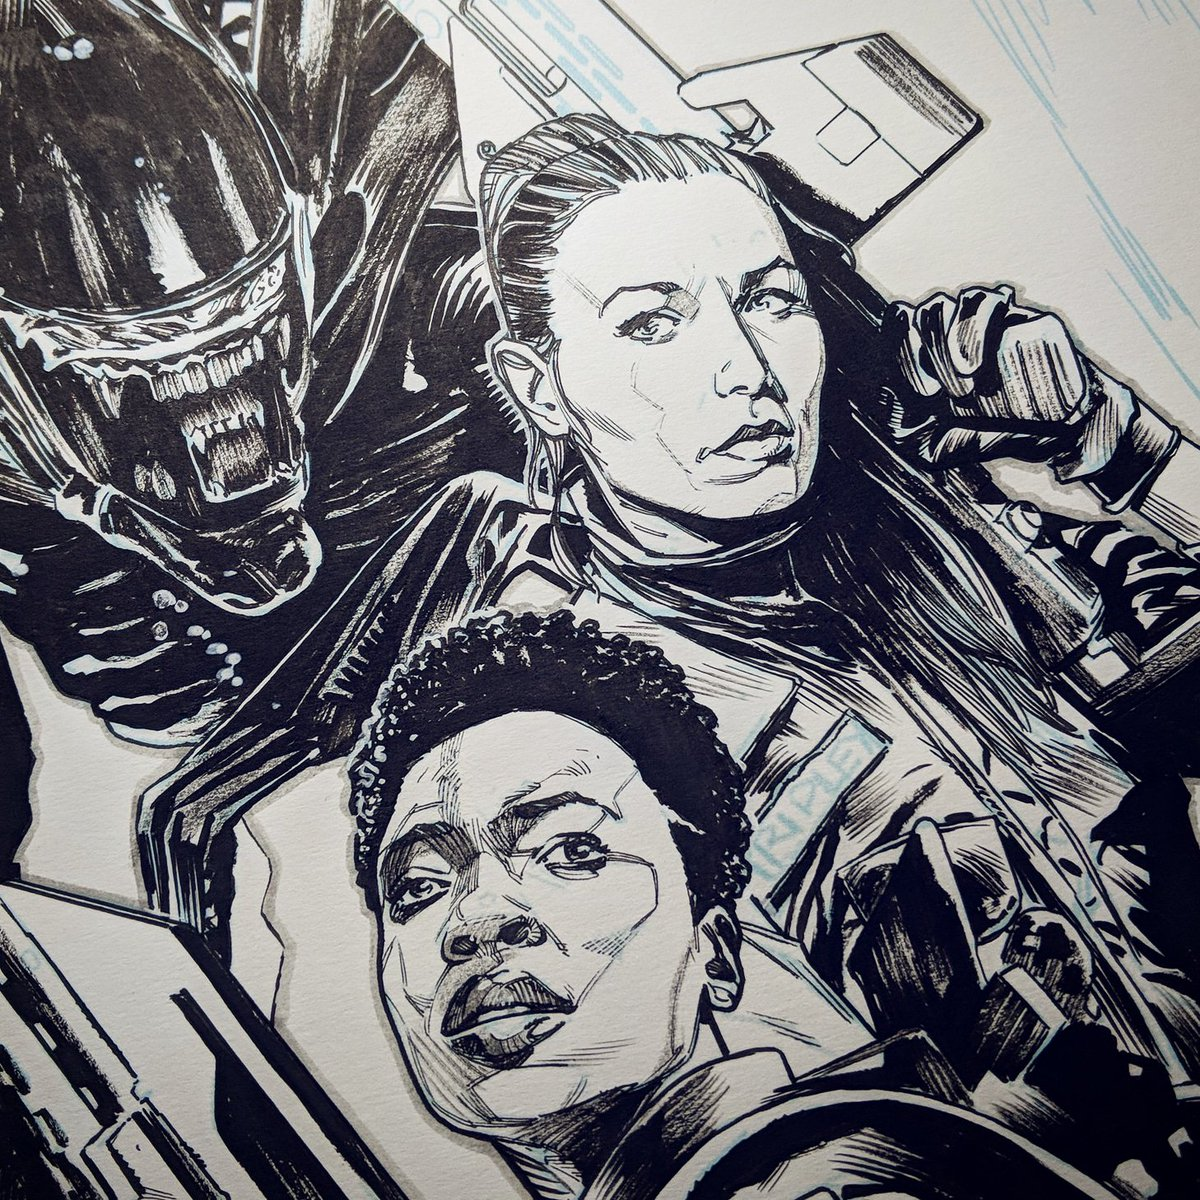 Early morning art post! Finished this up last night. About to drop some colour onto it... #happymonday #art #drawing #comics #aliens<br>http://pic.twitter.com/WhqqoBGztz